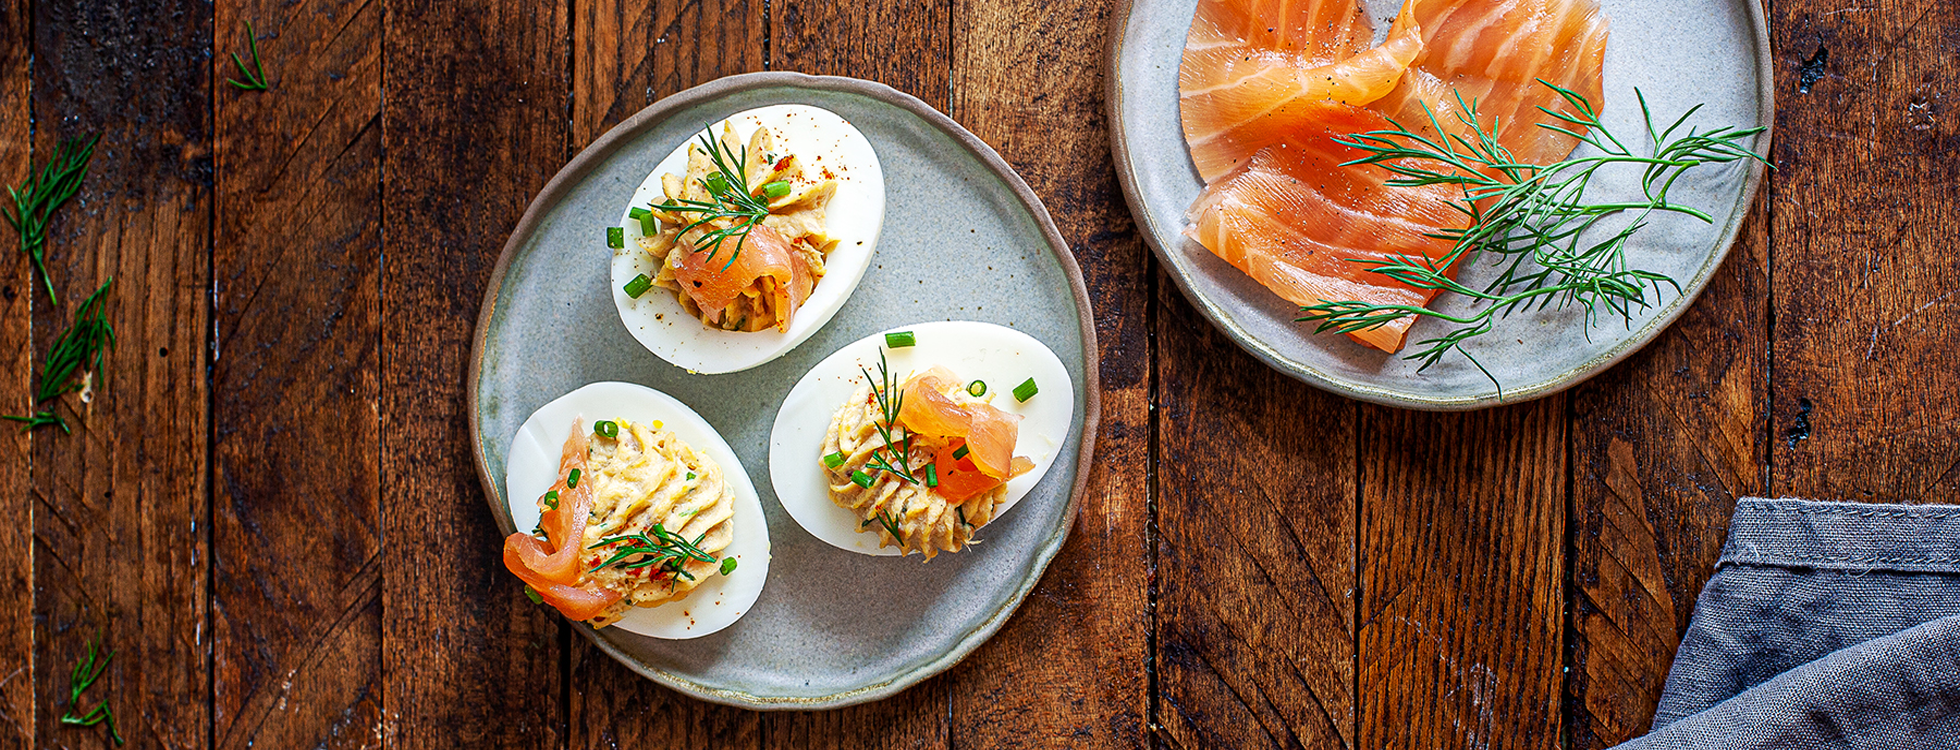 Eggs mimosa with smoked salmon